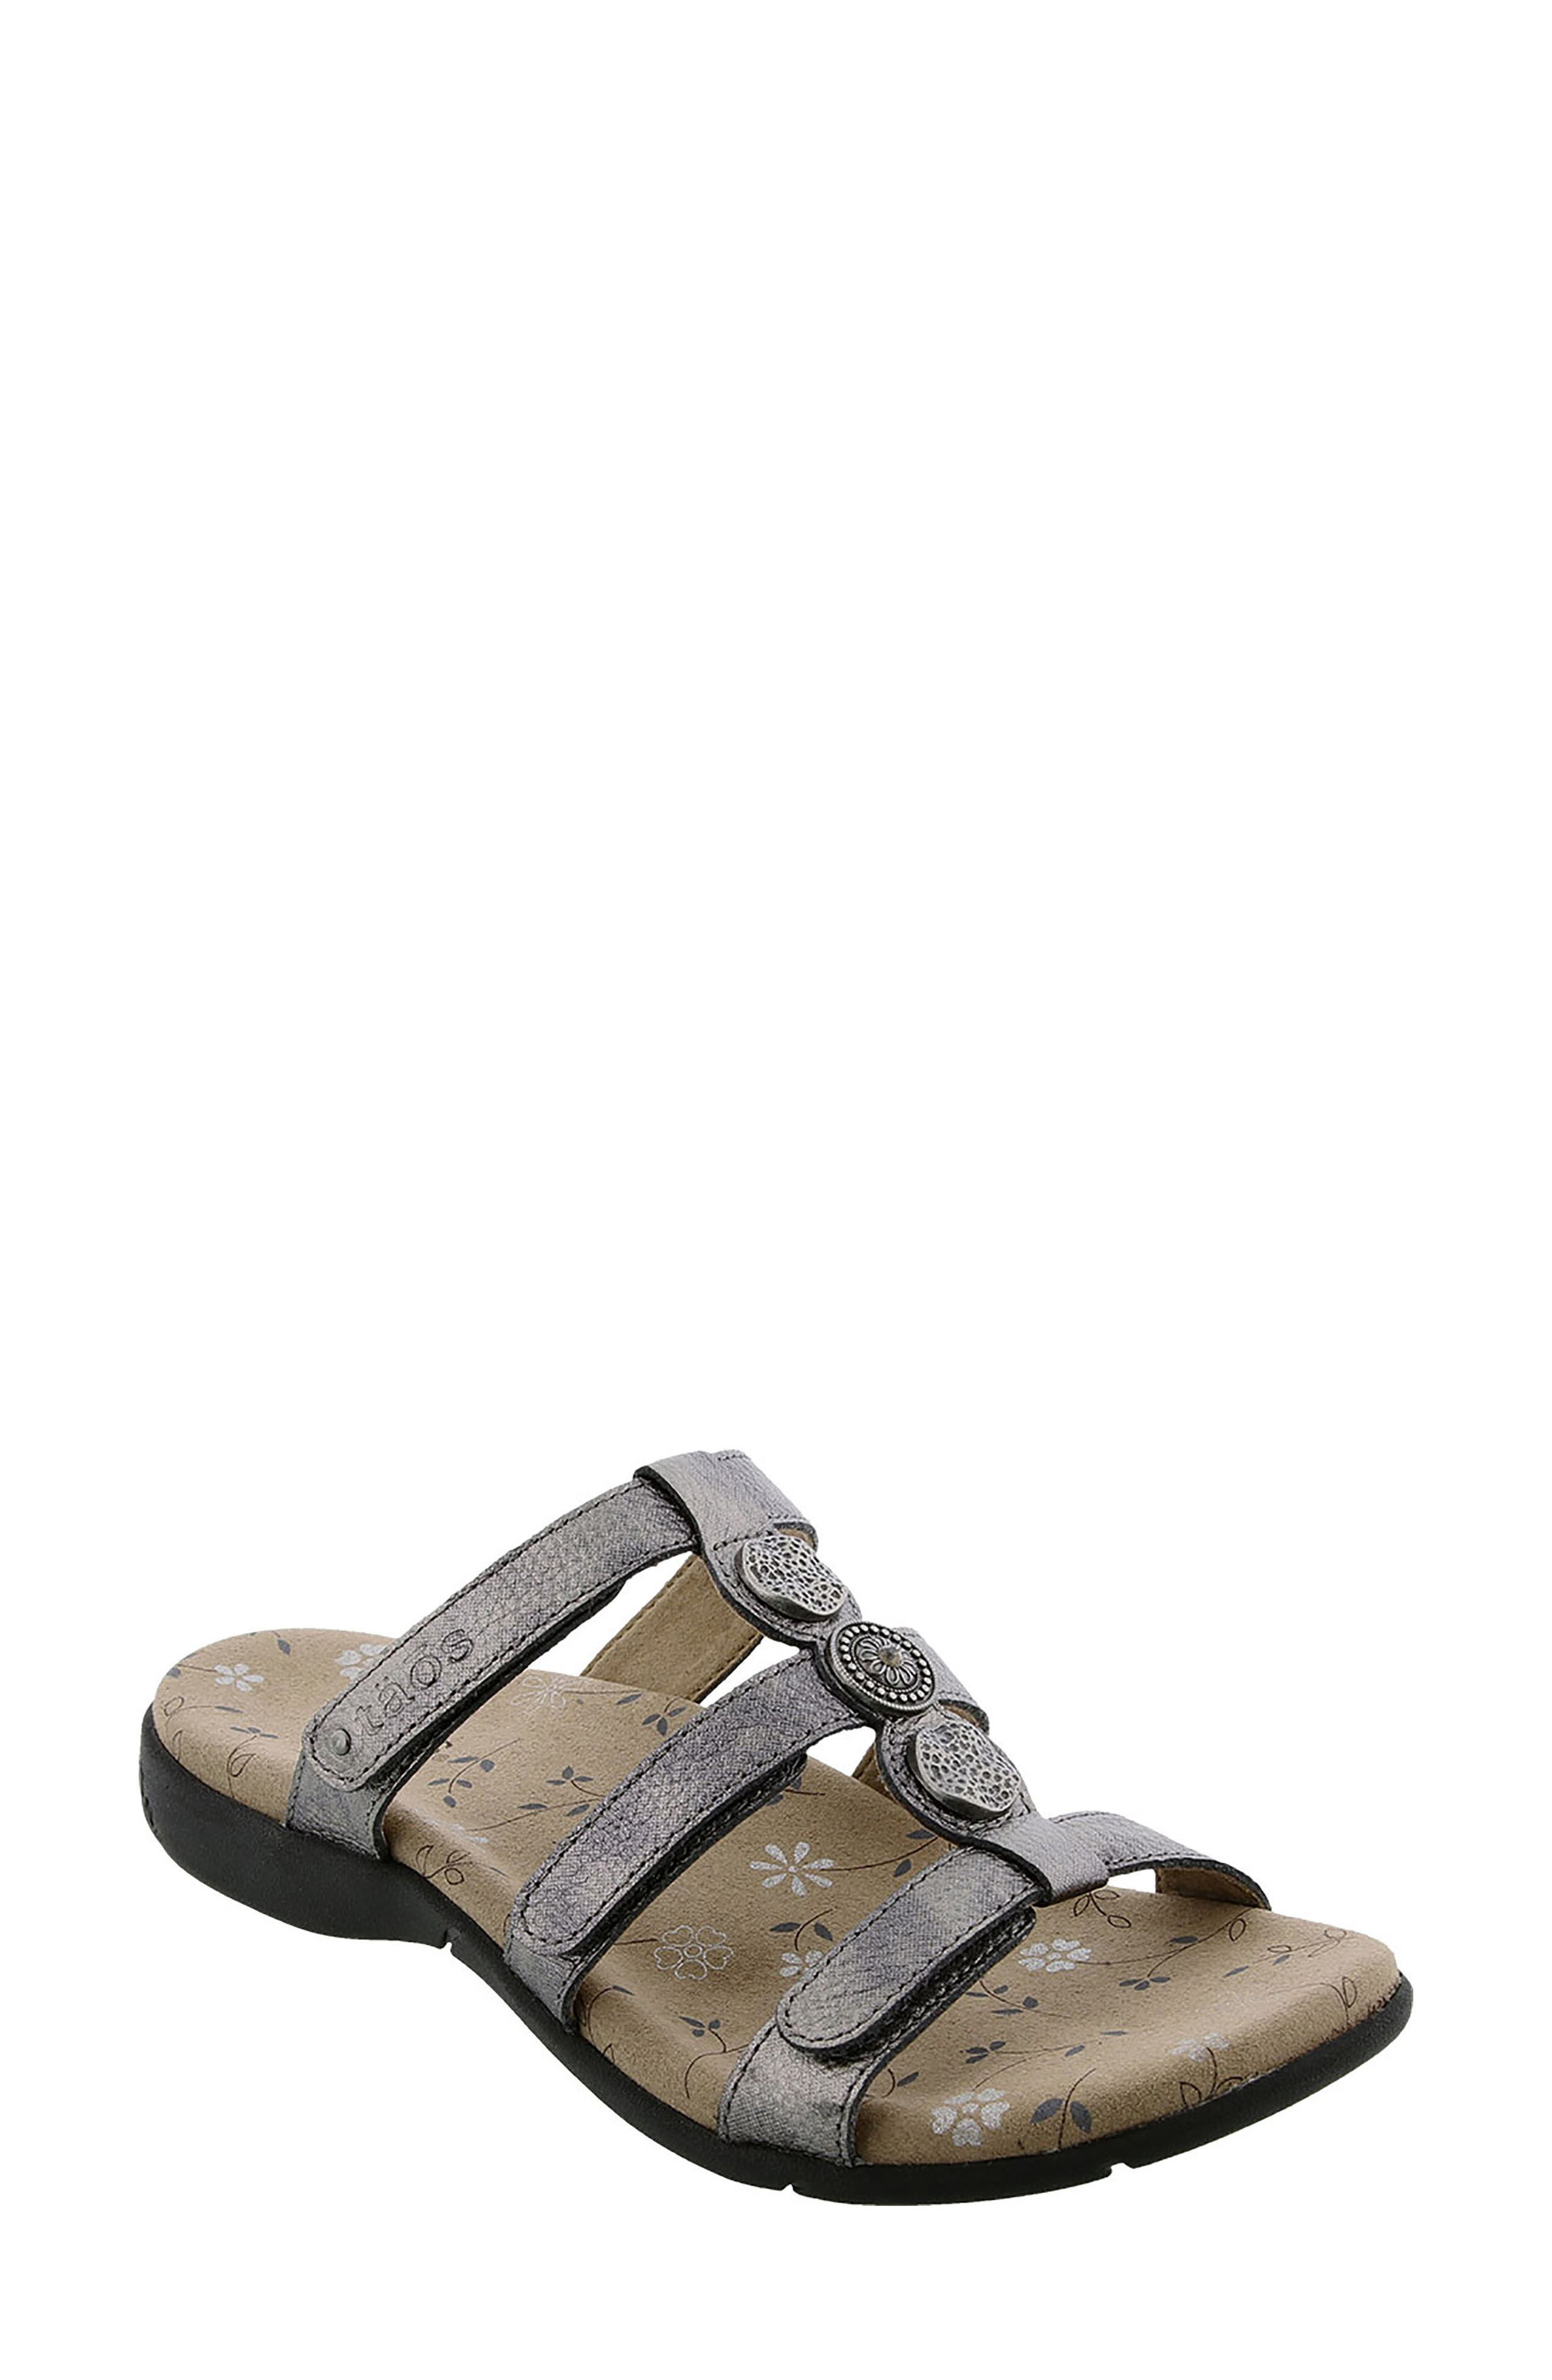 Prize 3 Sandal,                         Main,                         color, Pewter Leather